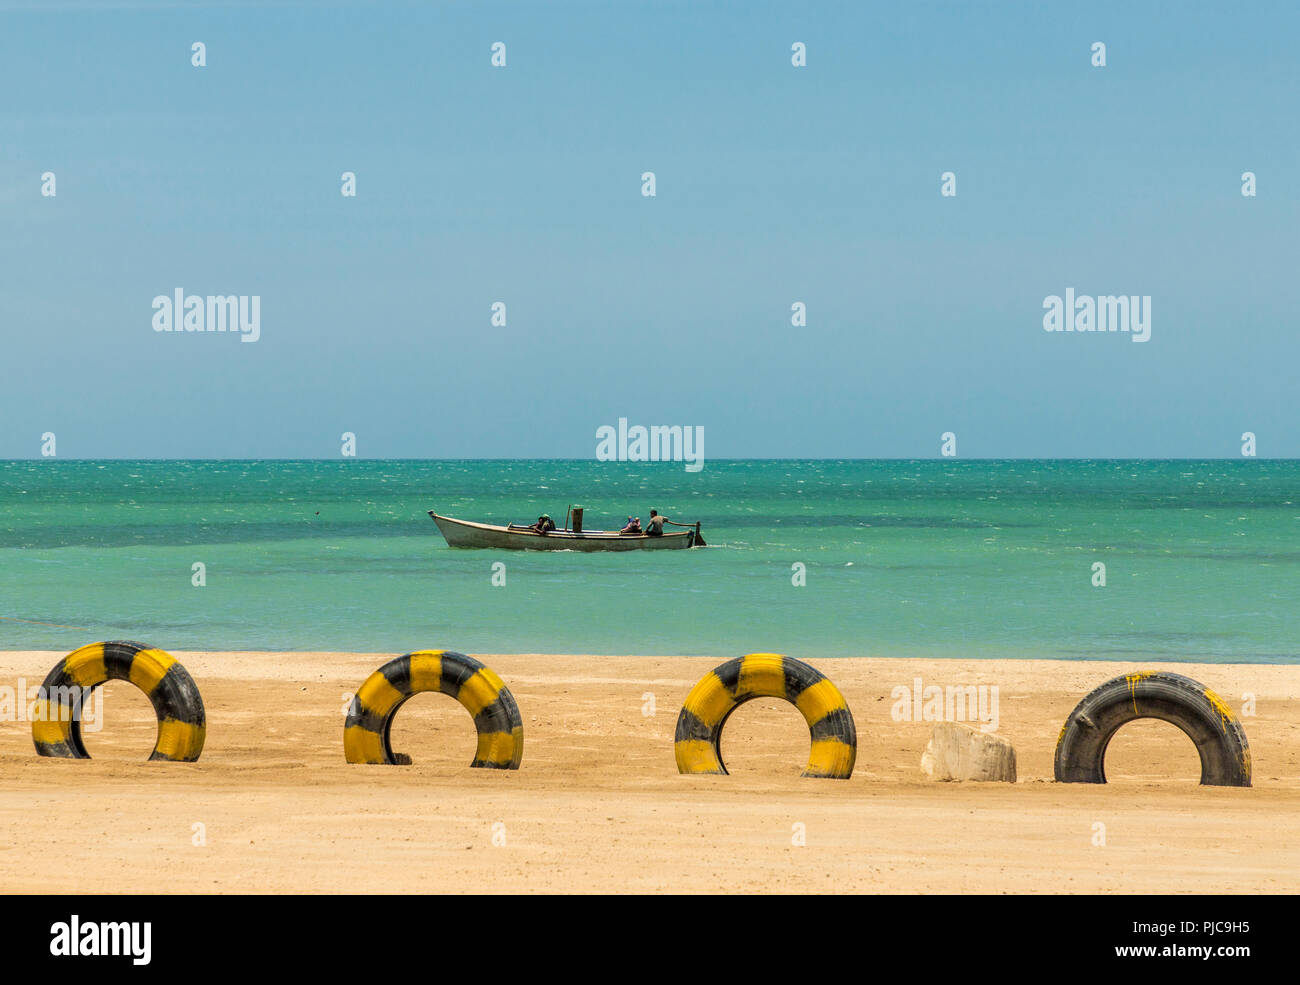 A view of Cabo de la Vela in Colombia - Stock Image